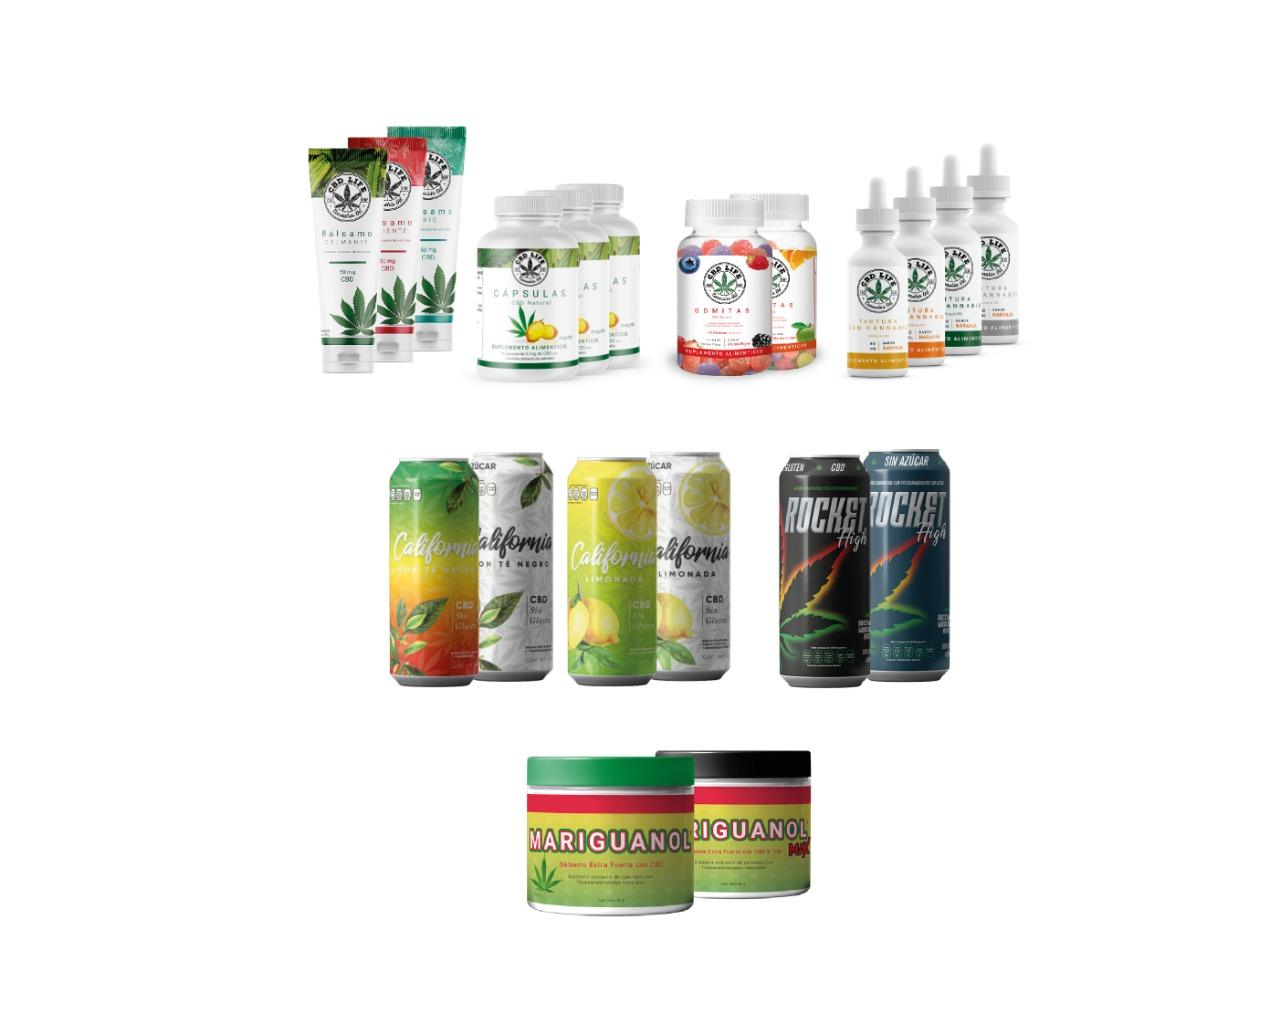 cannabis-based products